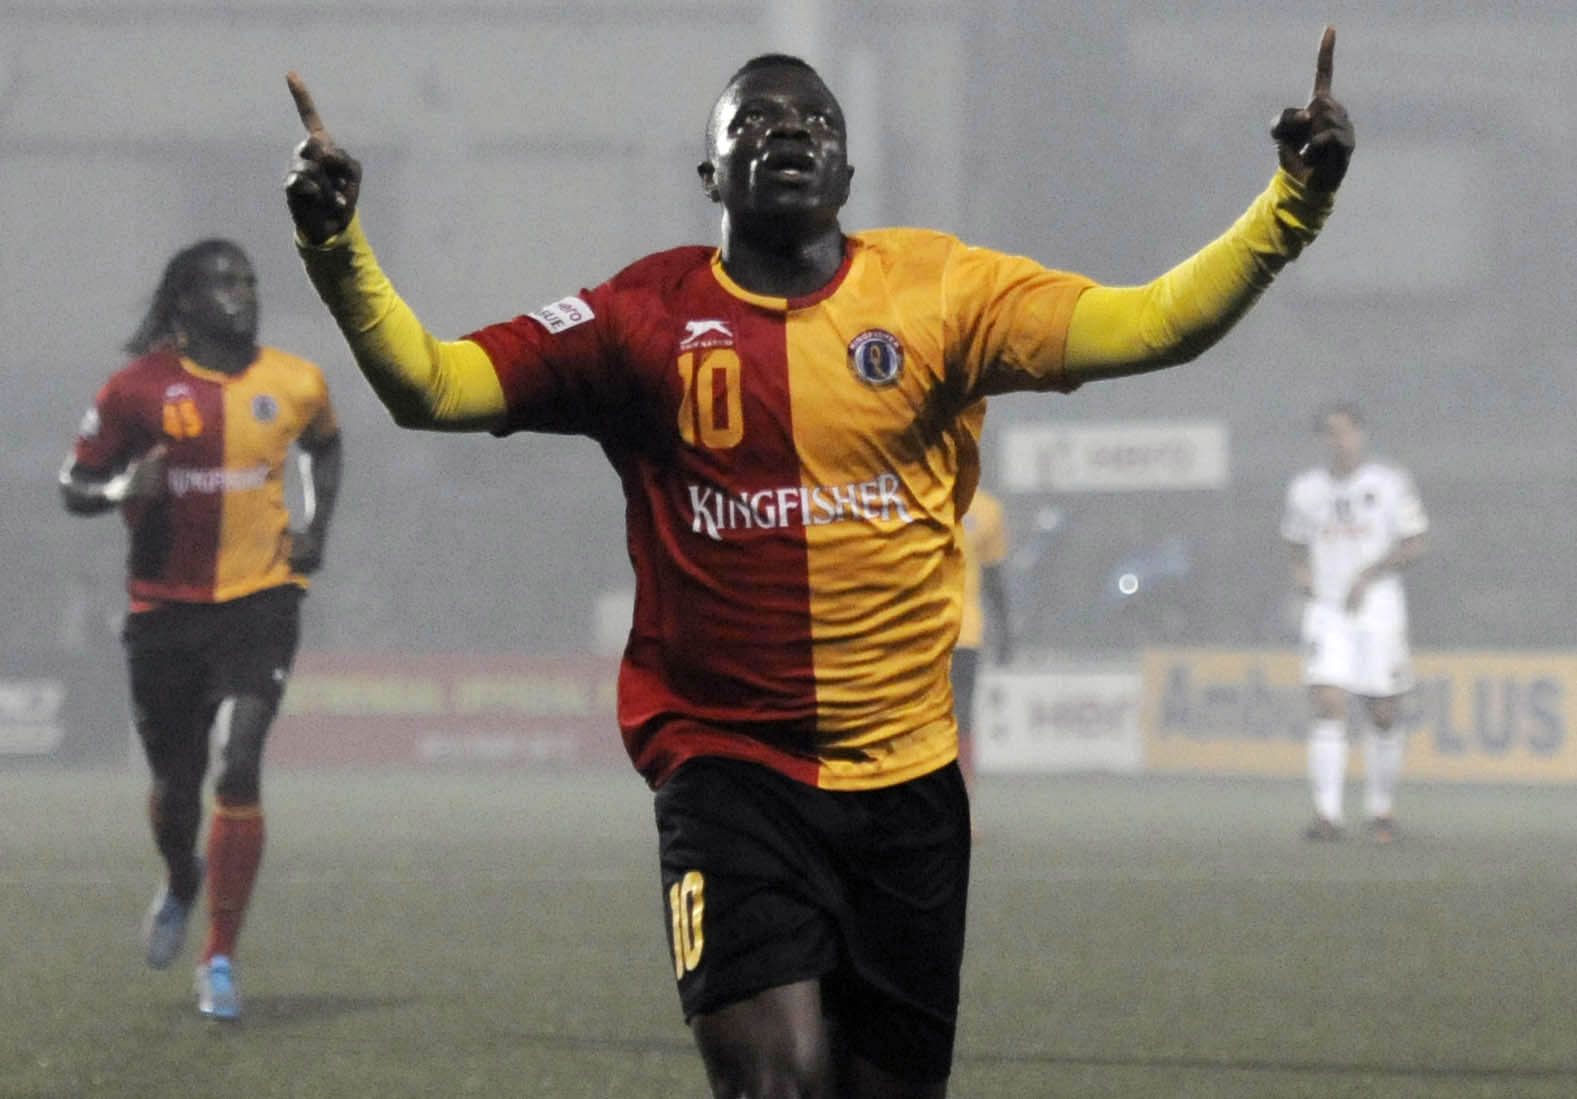 Ranti Martins of the I-League's East Bengal celebrates with teammates after scoring against Shillong Lajong FC during a match in 2016. Photo by Subhendu Ghosah/Hindustan Times via Getty Images